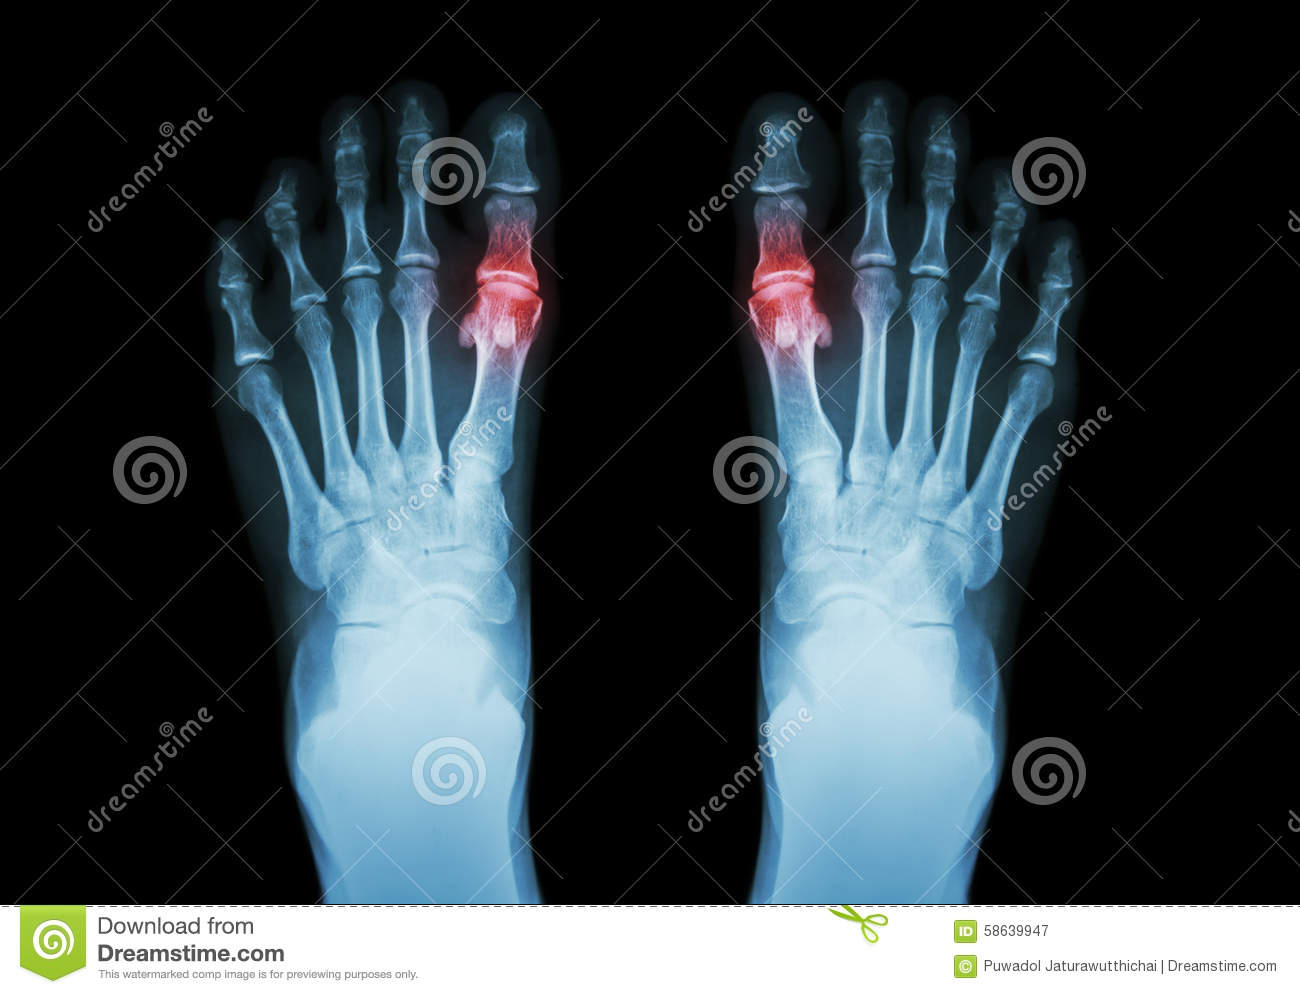 Gout , Rheumatoid arthritis ( Film x-ray both foot and arthritis at first metatarsophalangeal joint ) ( Medicine and Science